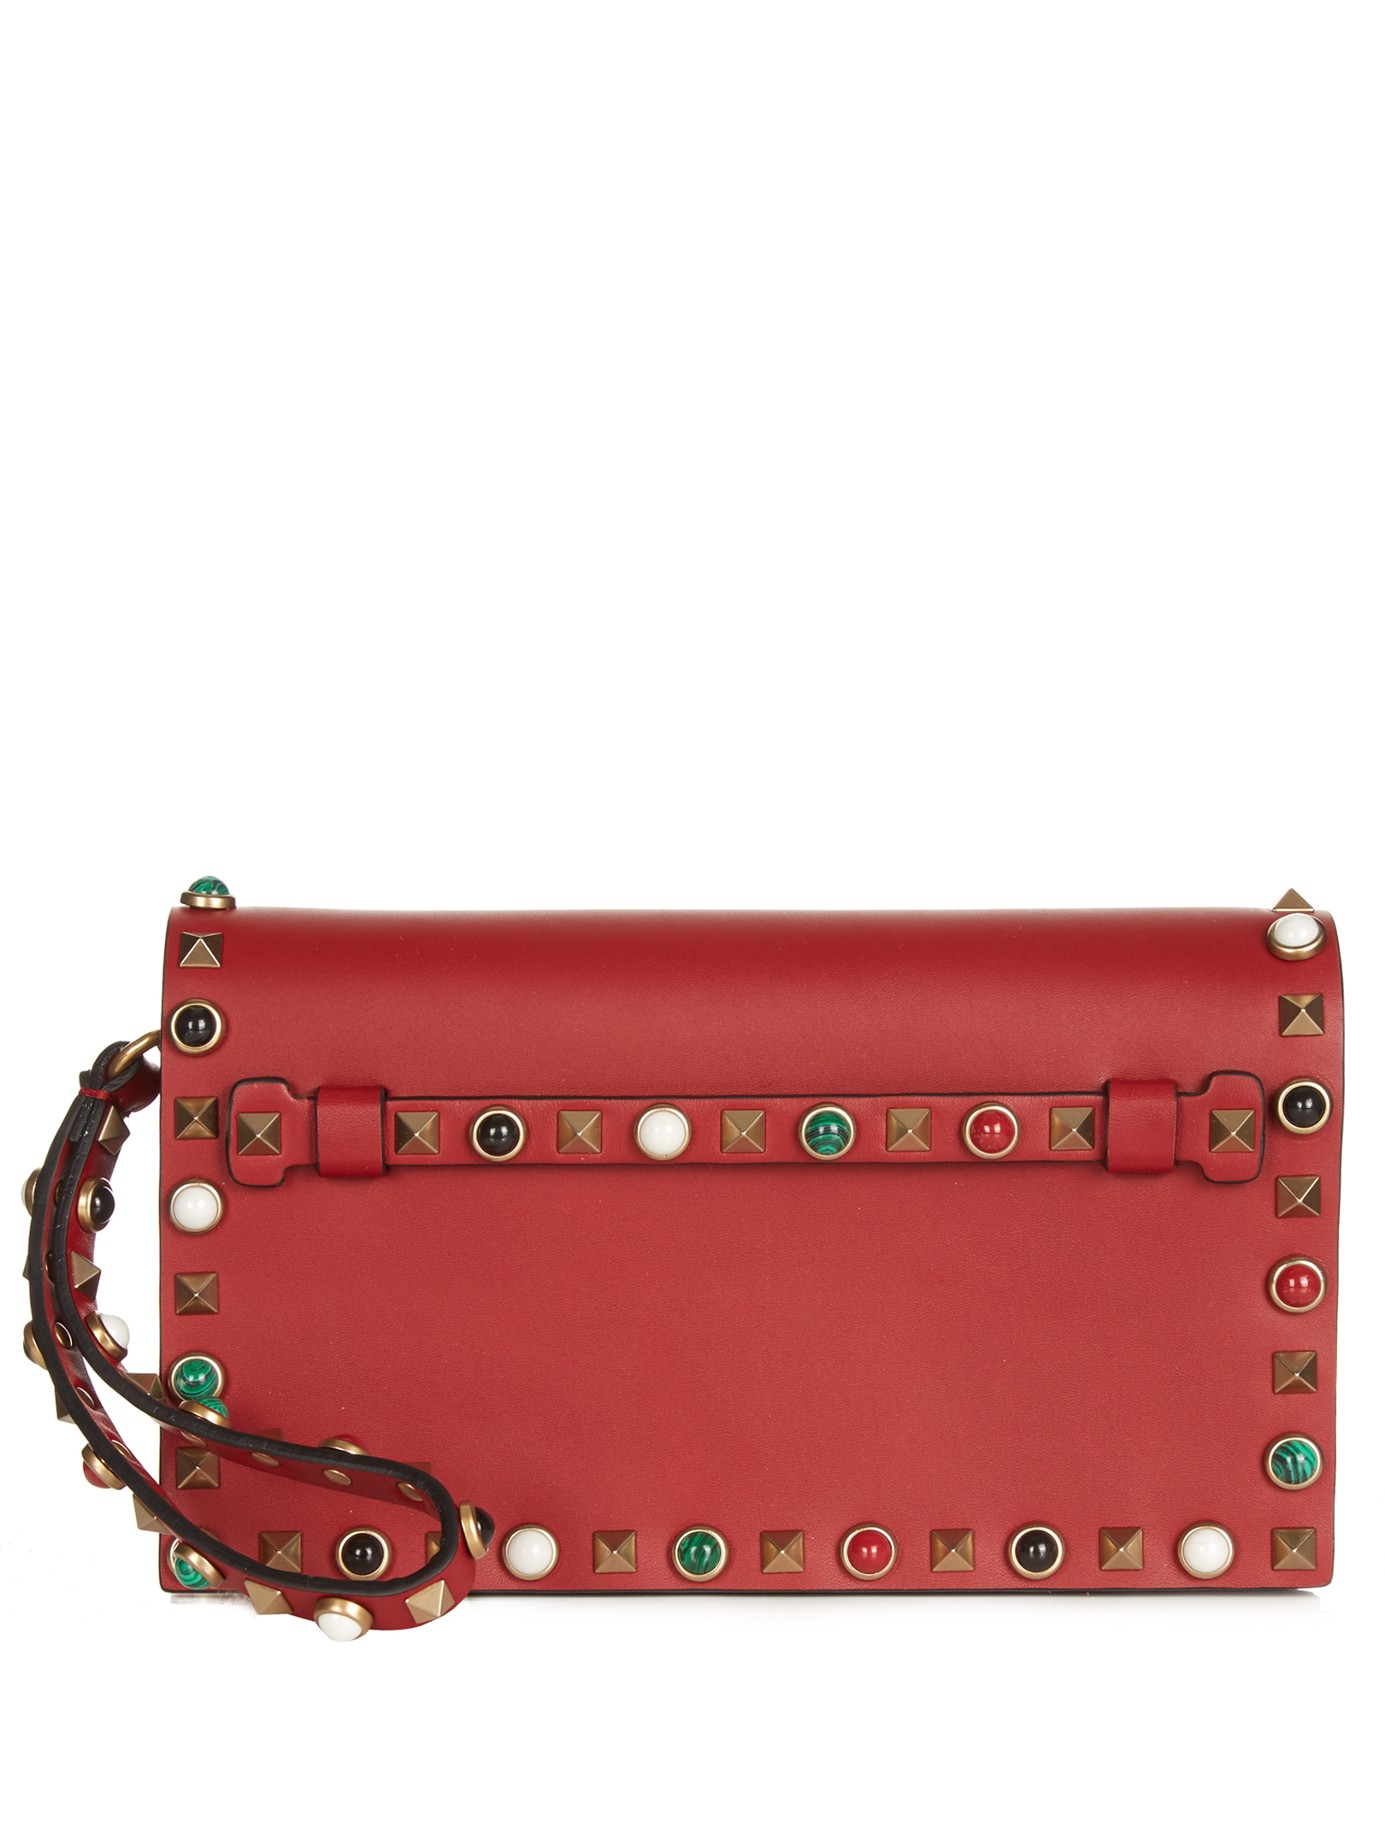 Valentino Rockstud Rolling Small Leather Clutch in Red